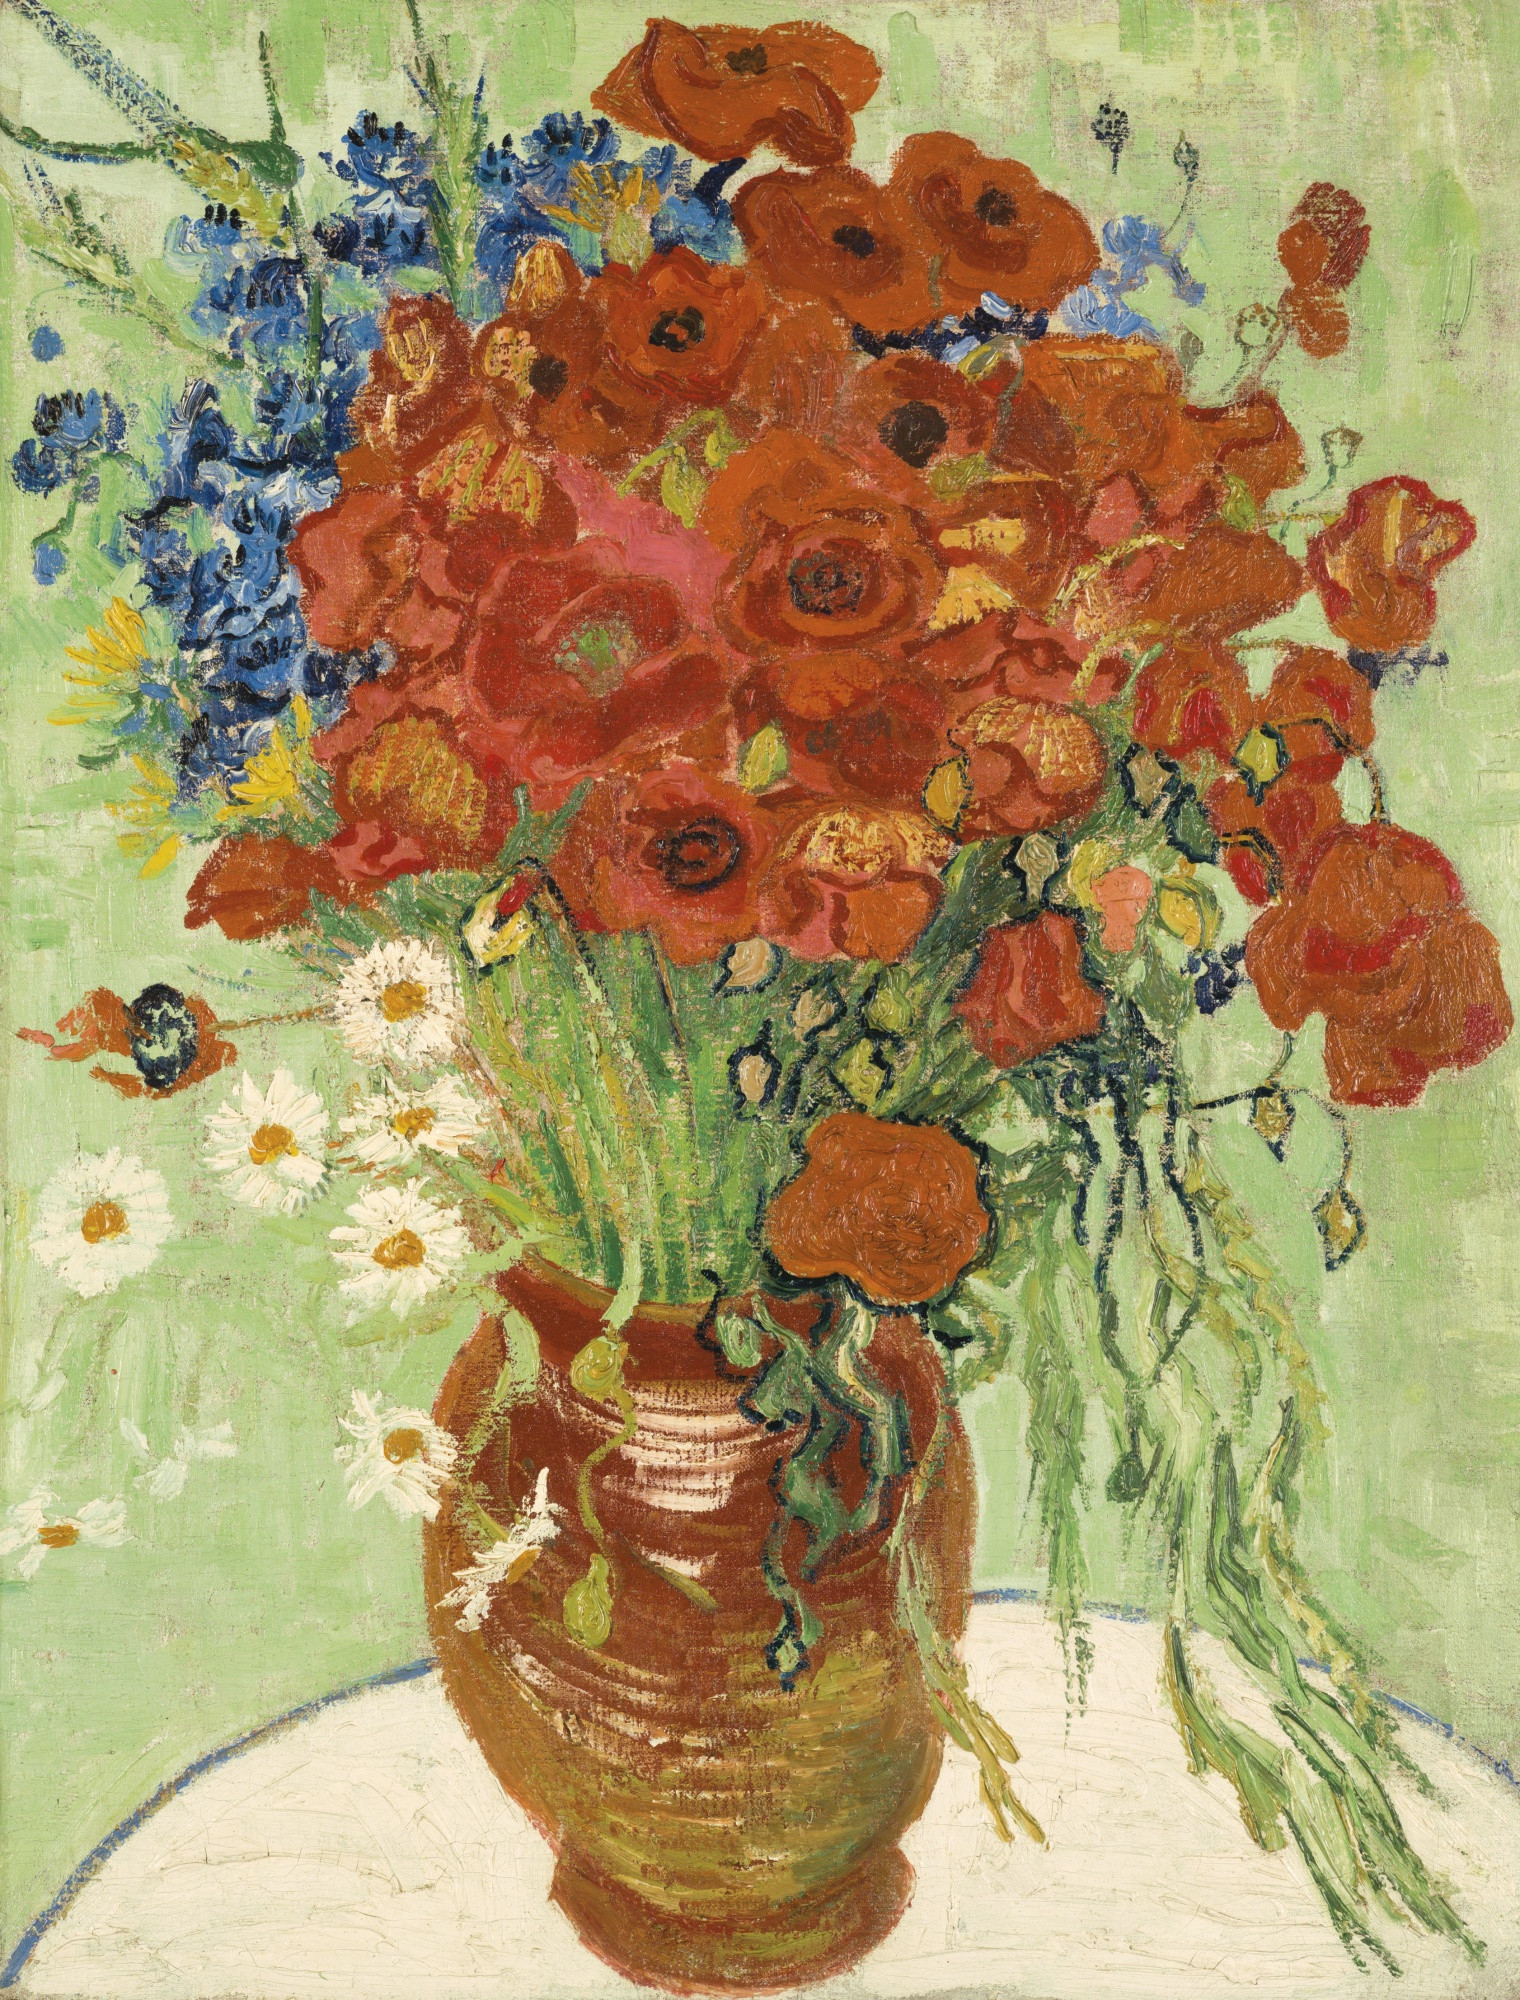 A Vase Of Flowers by Paul Gauguin Of souborvincent Van Gogh Vase with Cornflowers and Poppies F280 Throughout souborvincent Van Gogh Vase with Cornflowers and Poppies F280 Jh2032